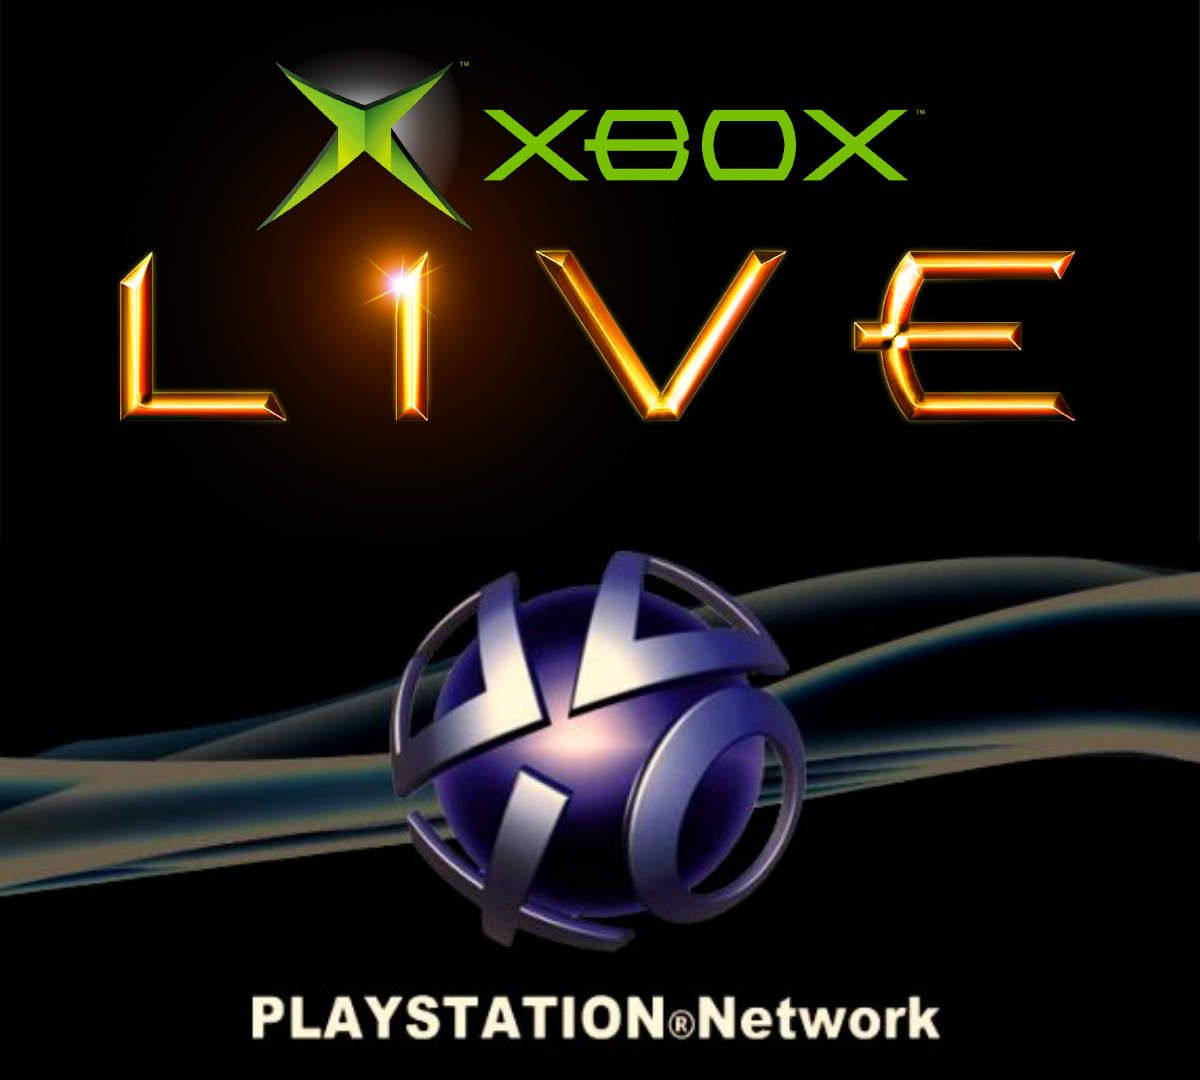 After DDoS Attack, Xbox Live and PSN Now Online and